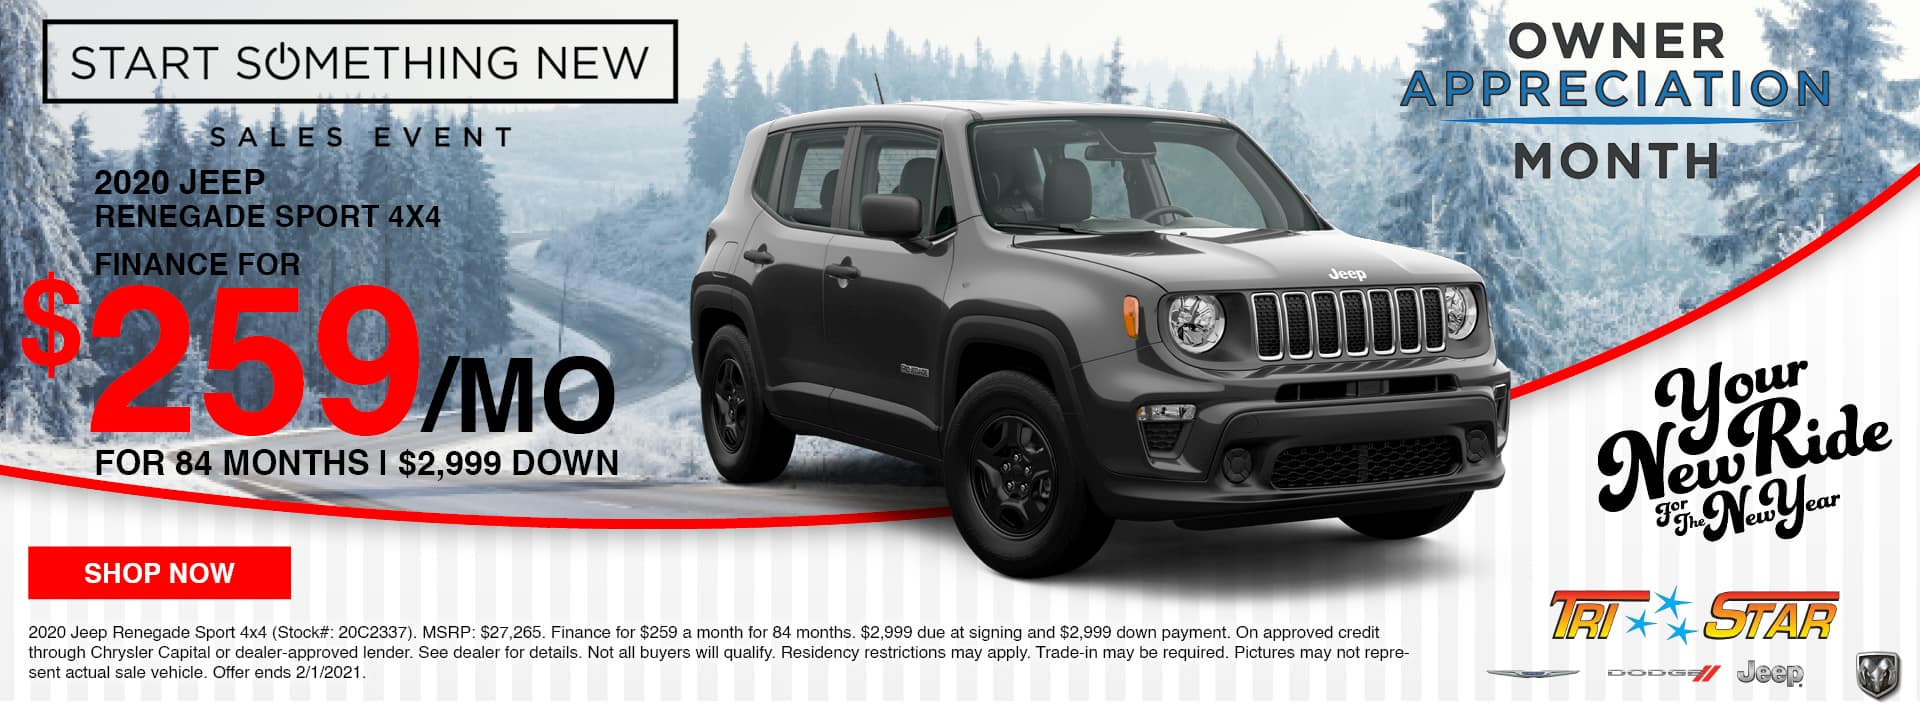 2020 Jeep Renegade Lease for $259/mo